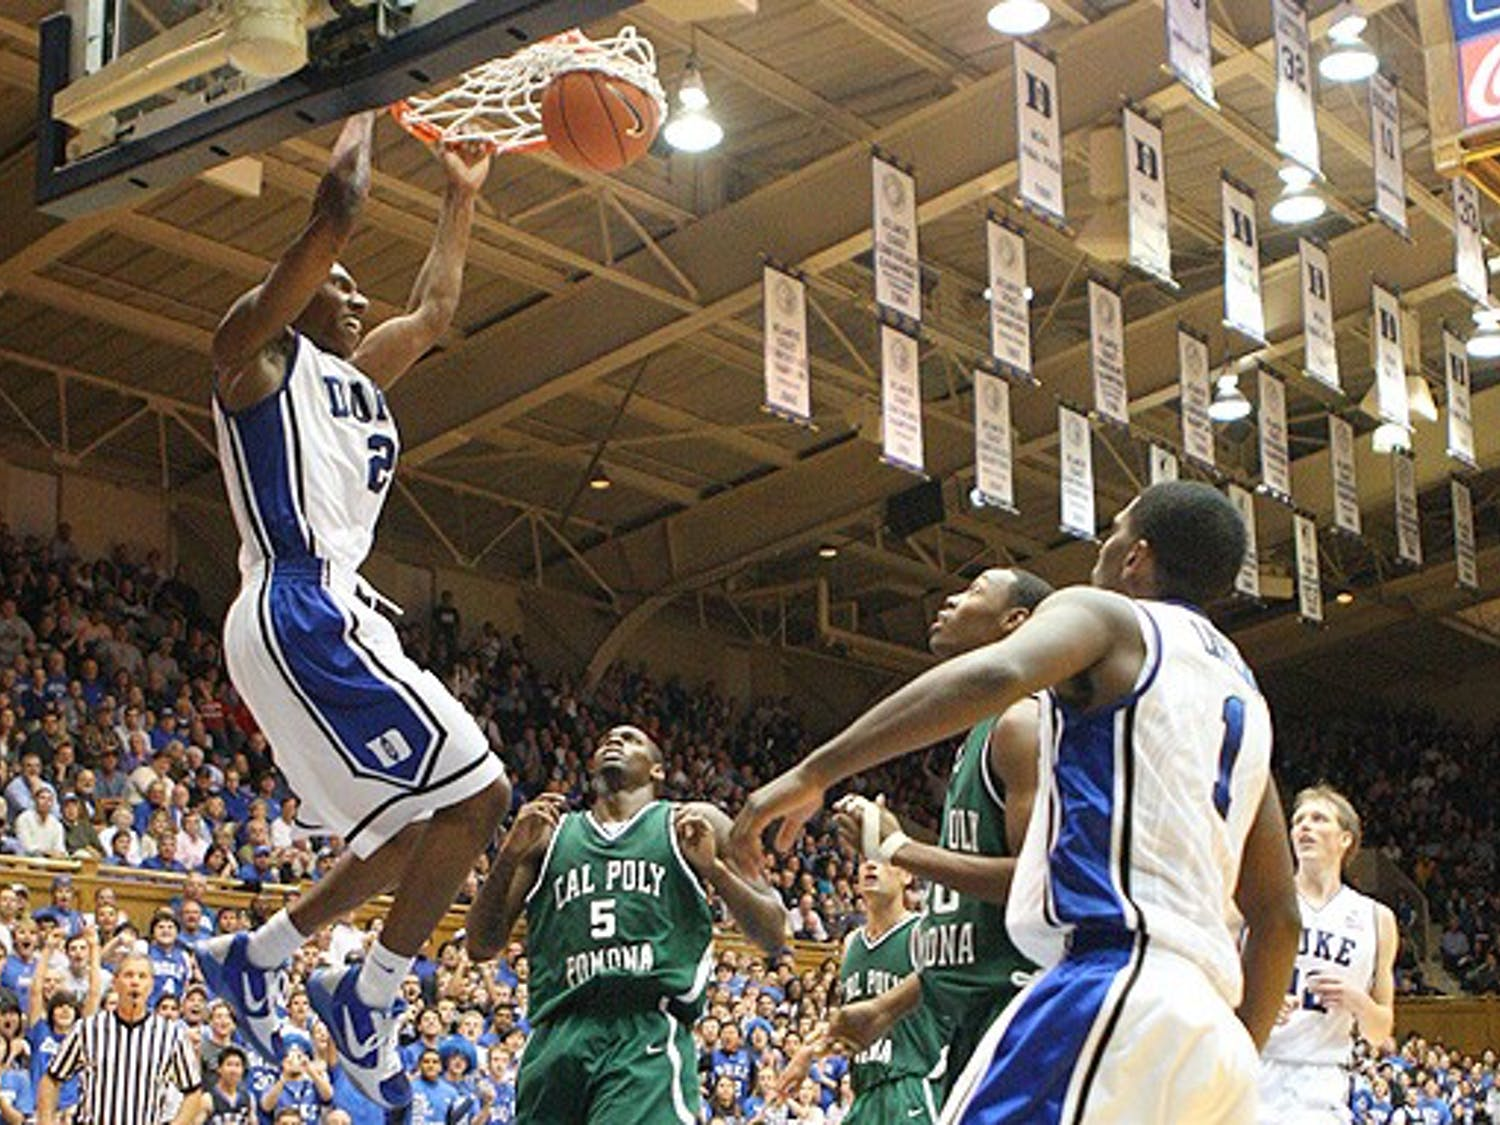 Nolan Smith was one of five players in double figures in Duke's final exhibition against Cal Poly Pomona.